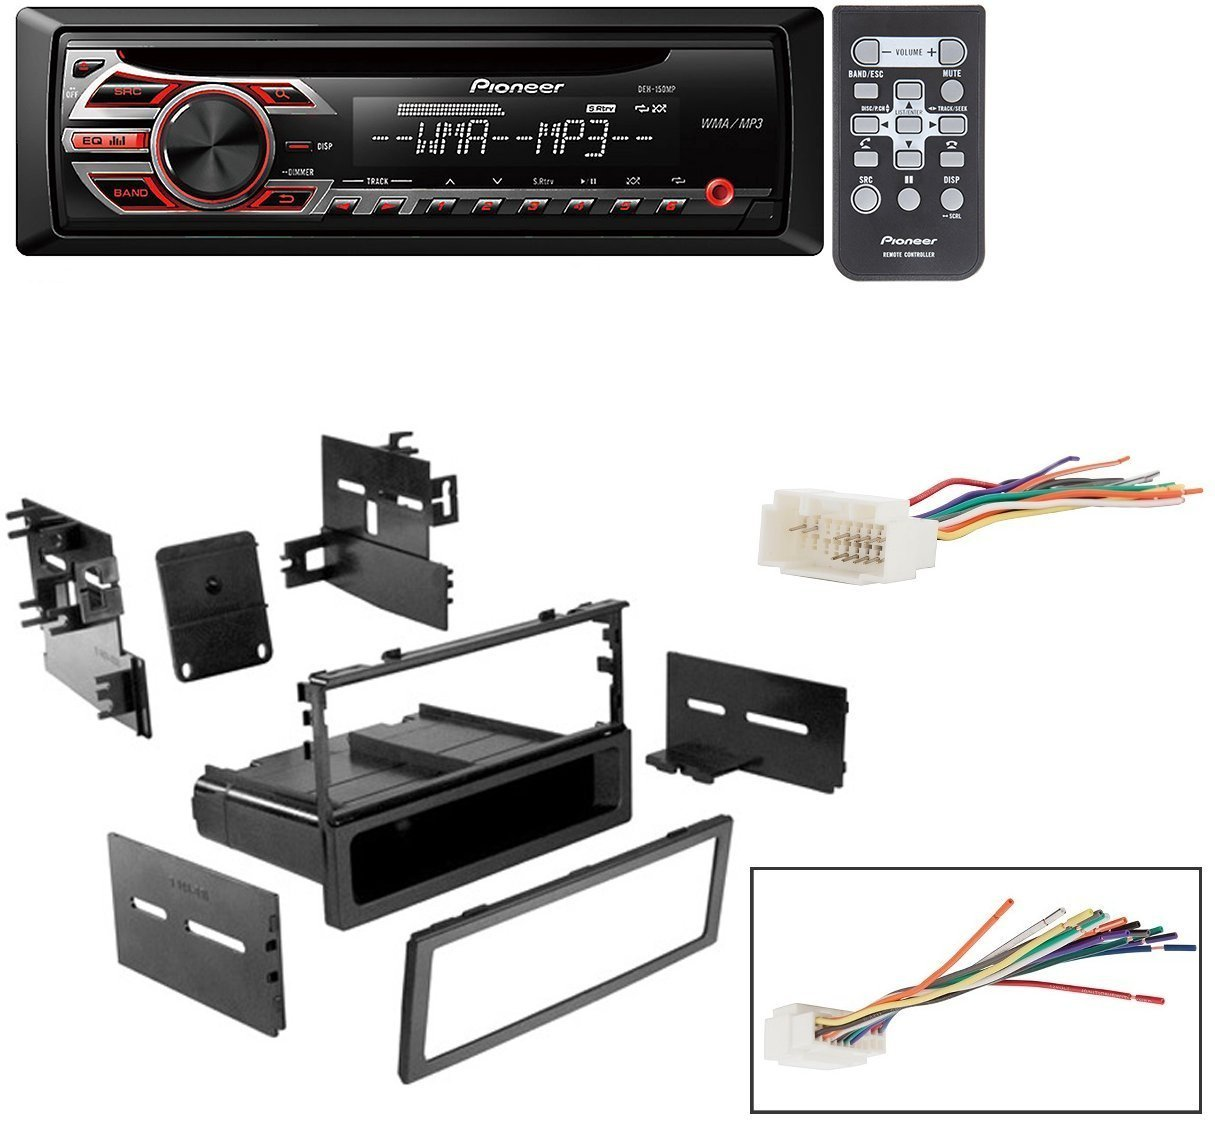 hight resolution of honda 1999 2000 civic car stereo dash install mounting kit wire harness with pioneer deh 150mp cd digital music player receivers walmart com